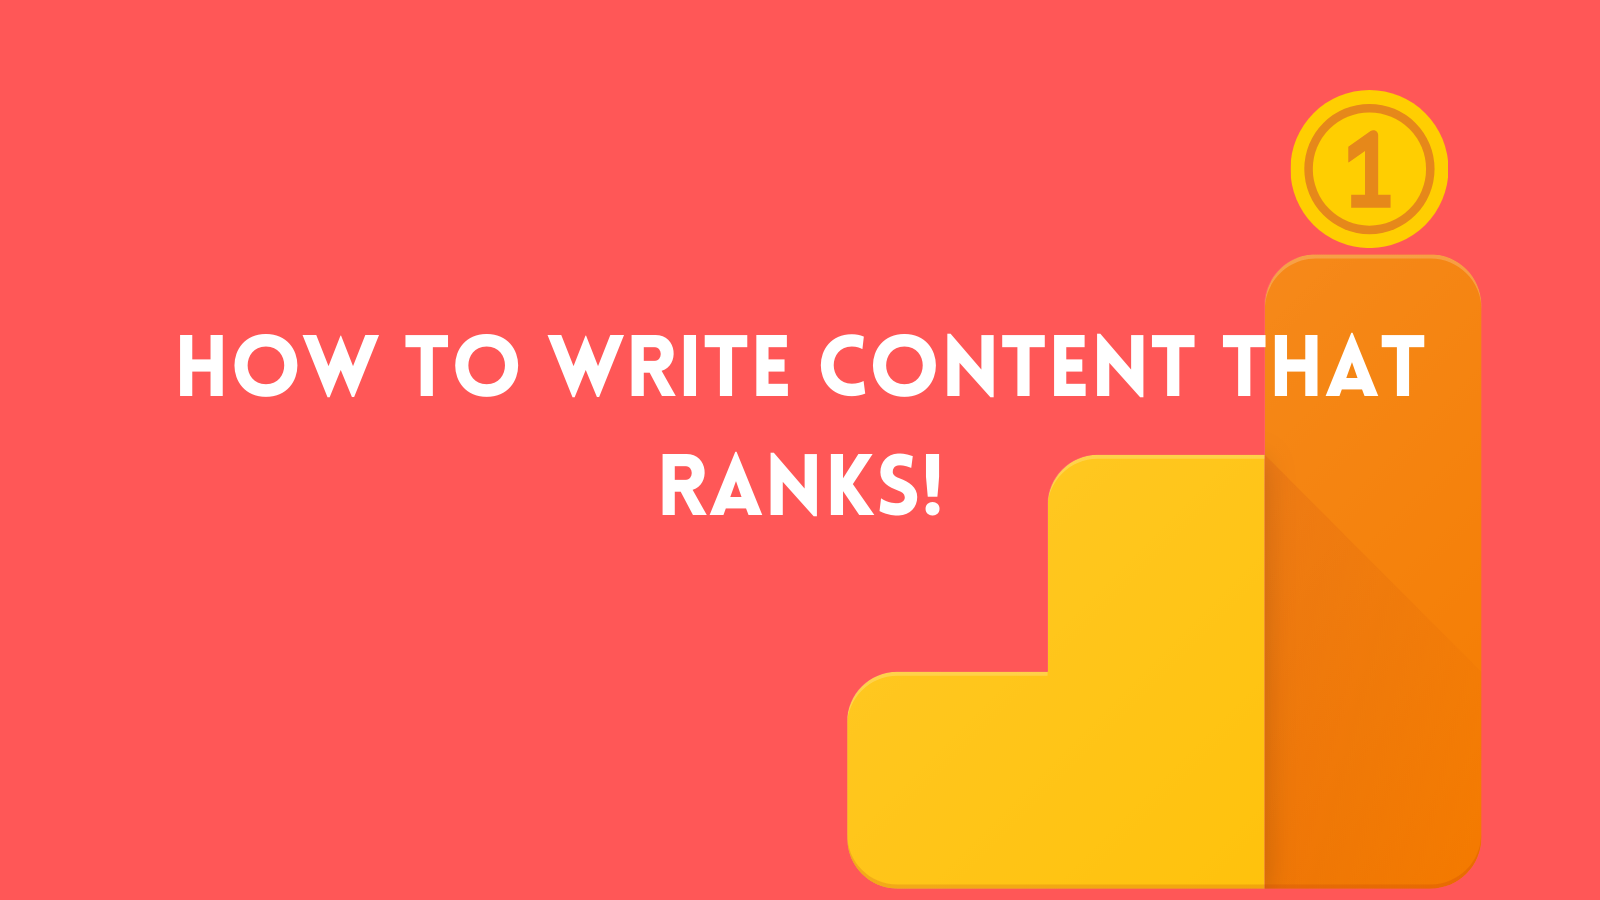 How to rank content on Google